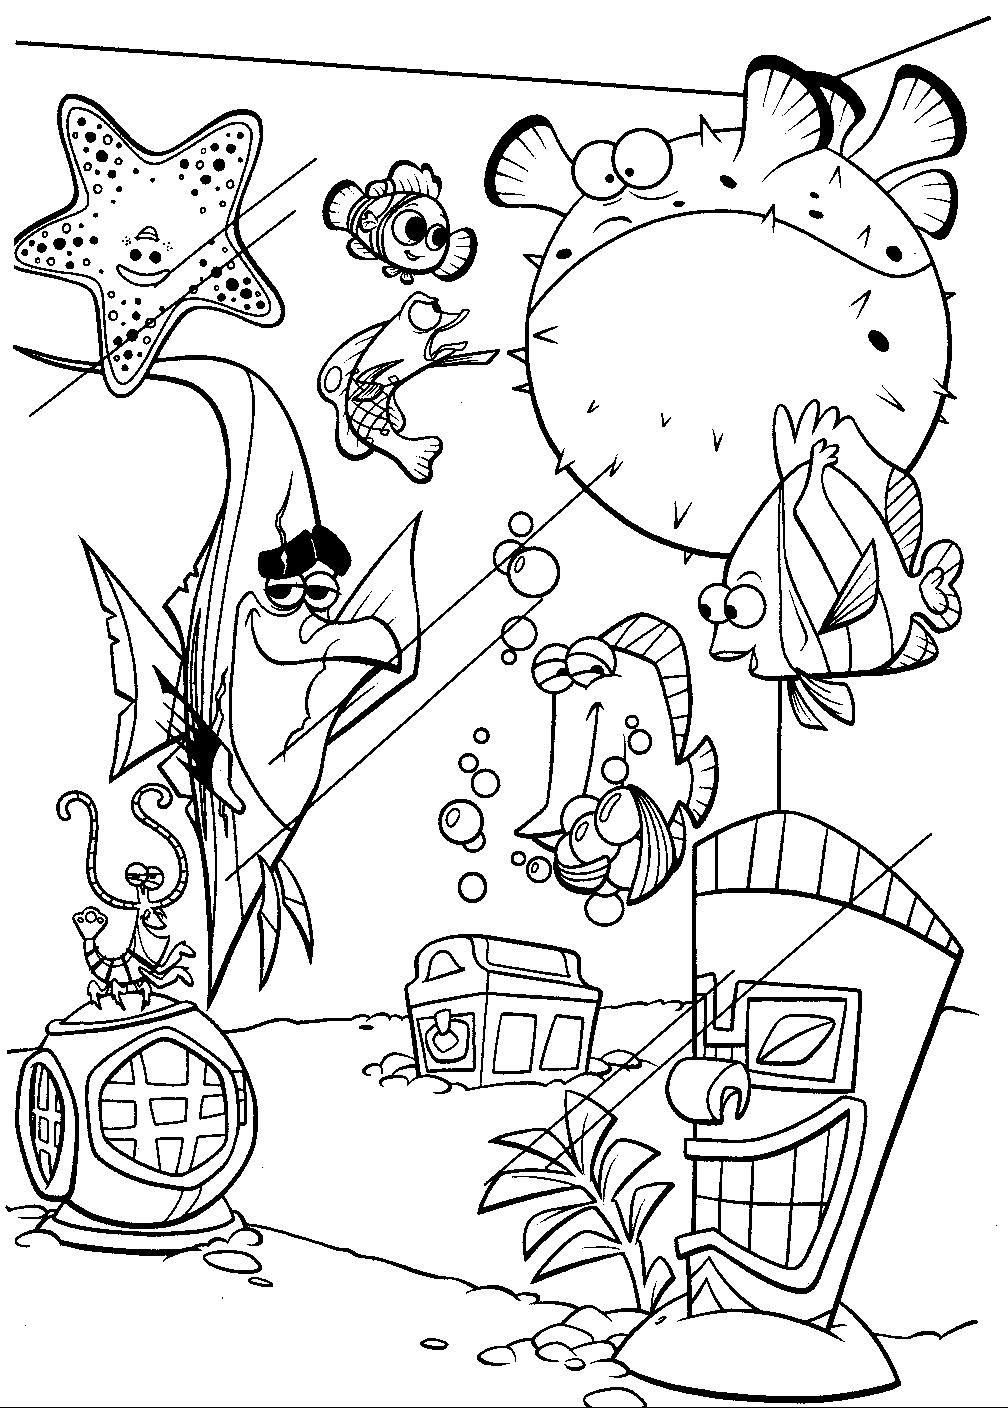 coloring nemo characters finding nemo coloring pages printable sanat galeri nemo characters coloring